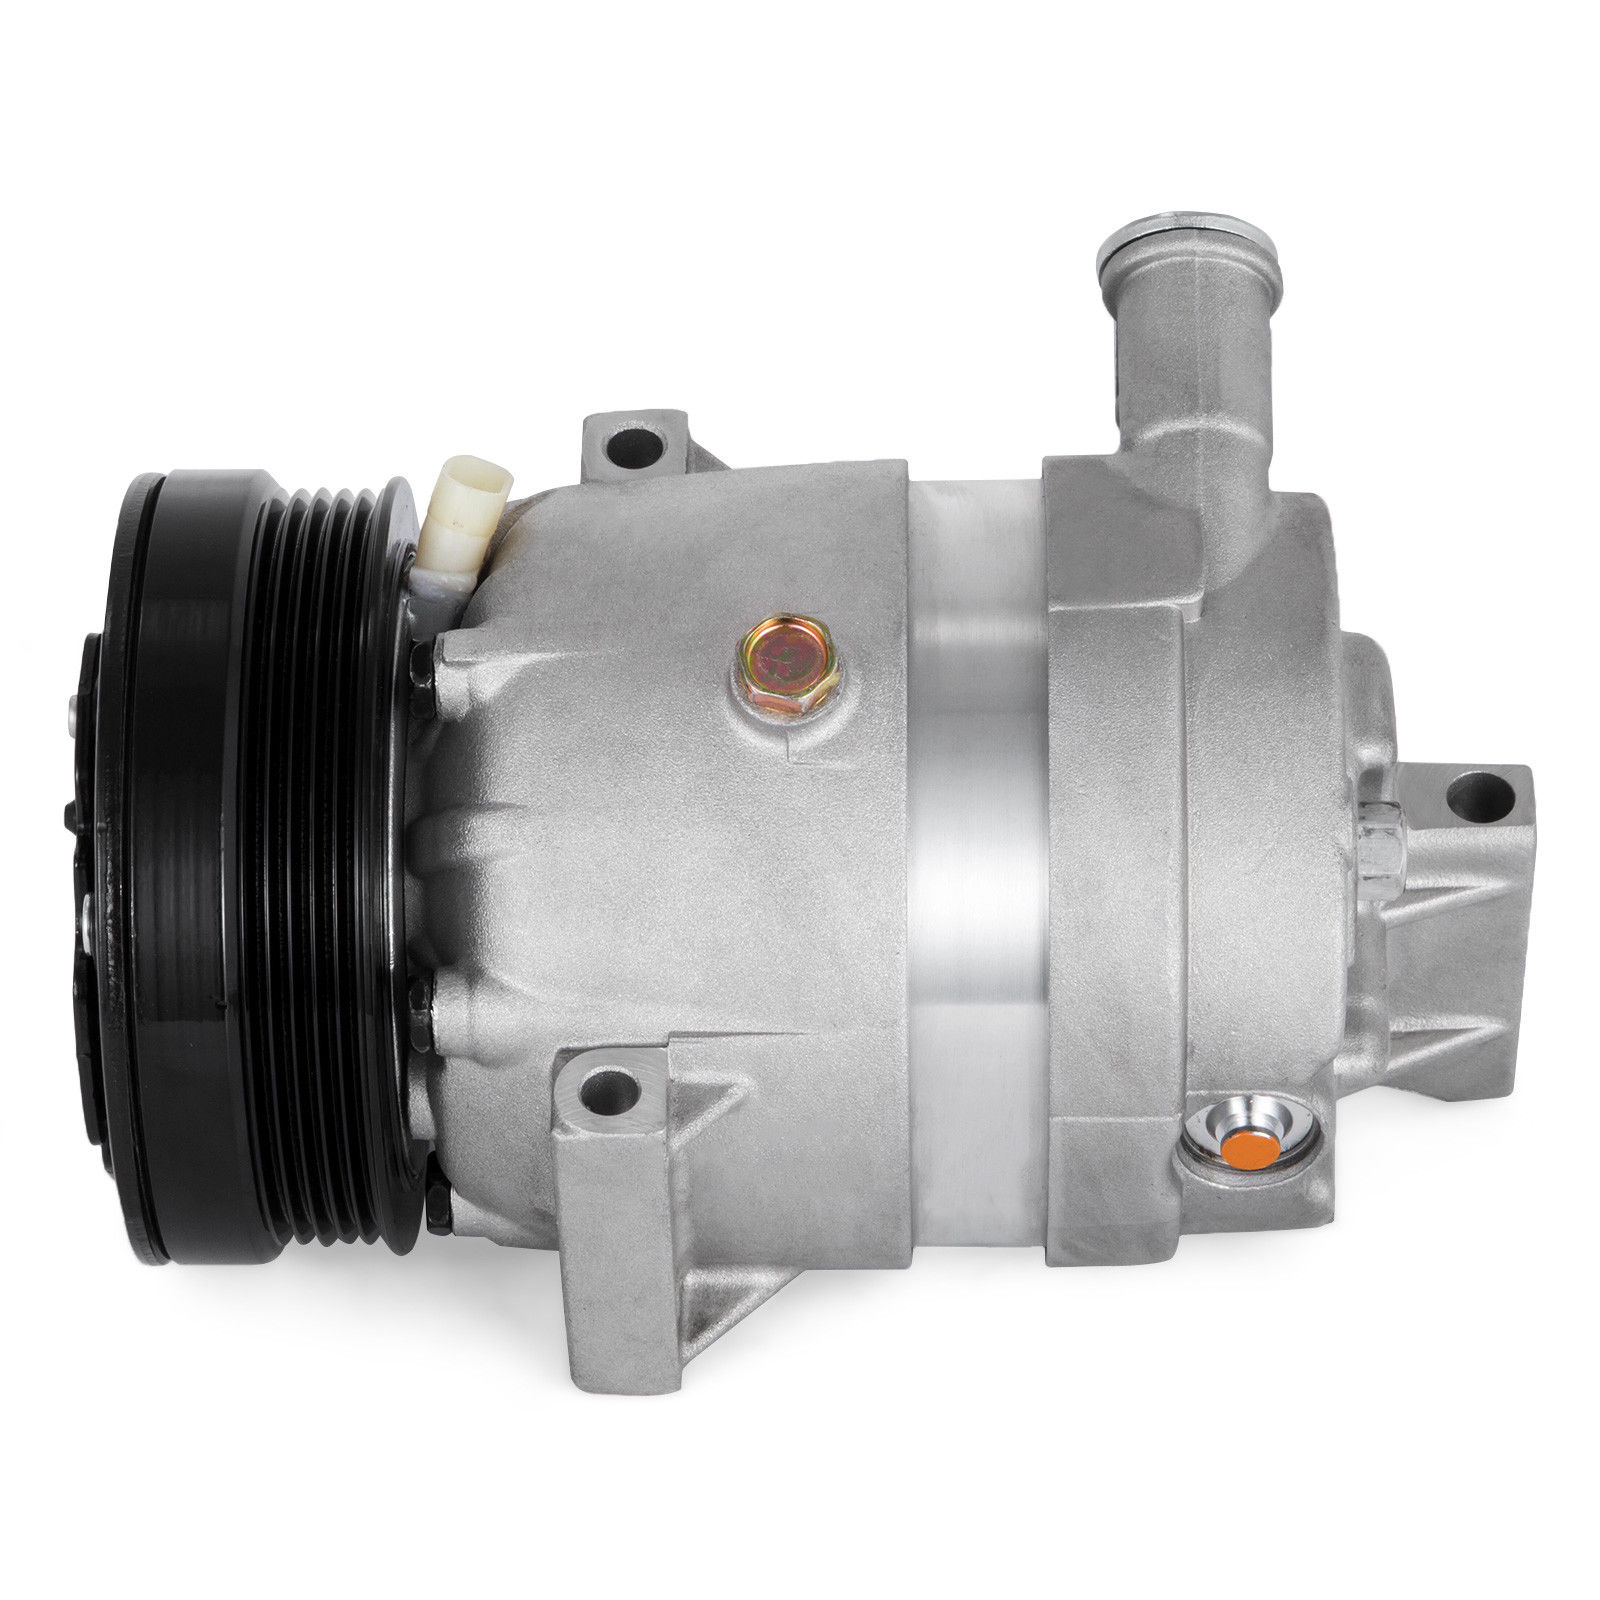 2009 09 2010 10 2011 11 Chevrolet Aveo Aveo 5 New AC A//C Compressor Fits